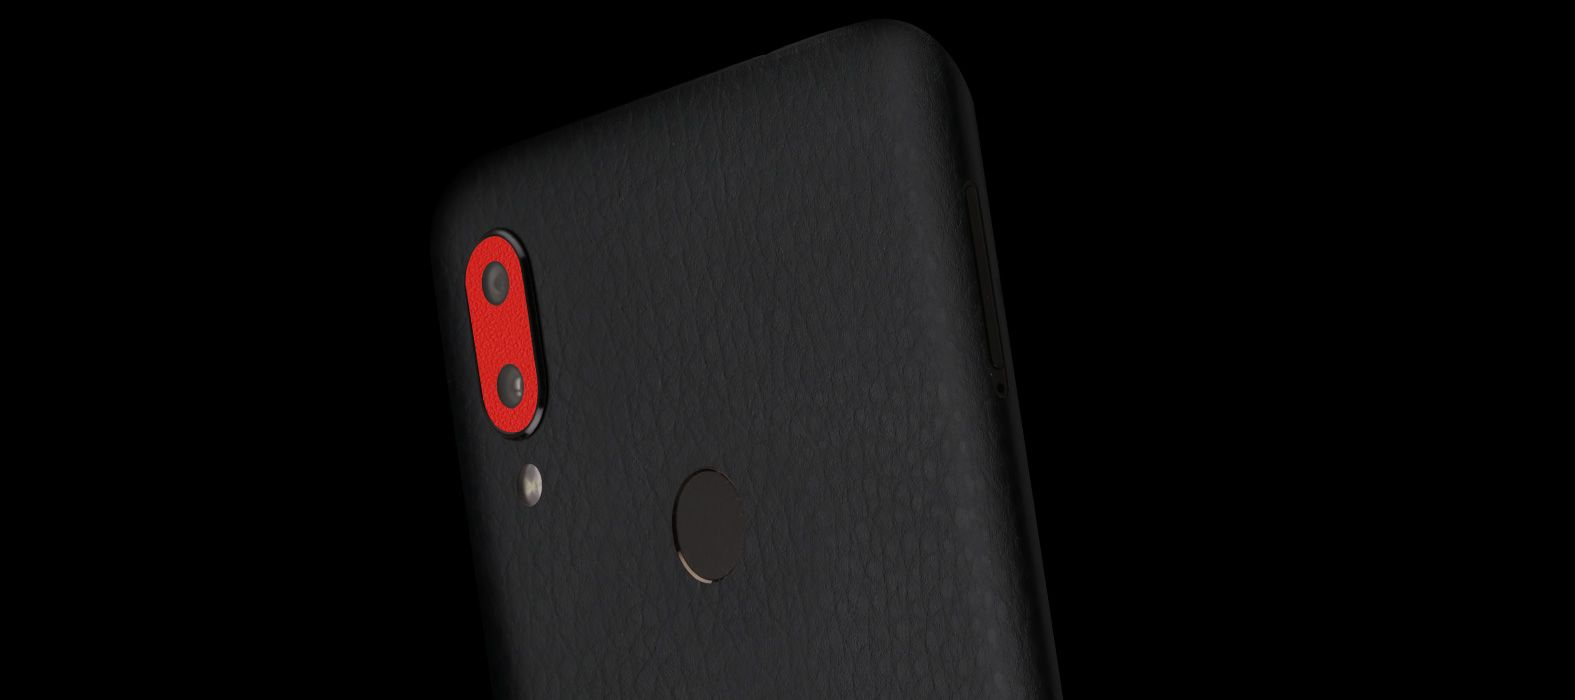 Redmi-note-7-pro_Black-Leather_Skins